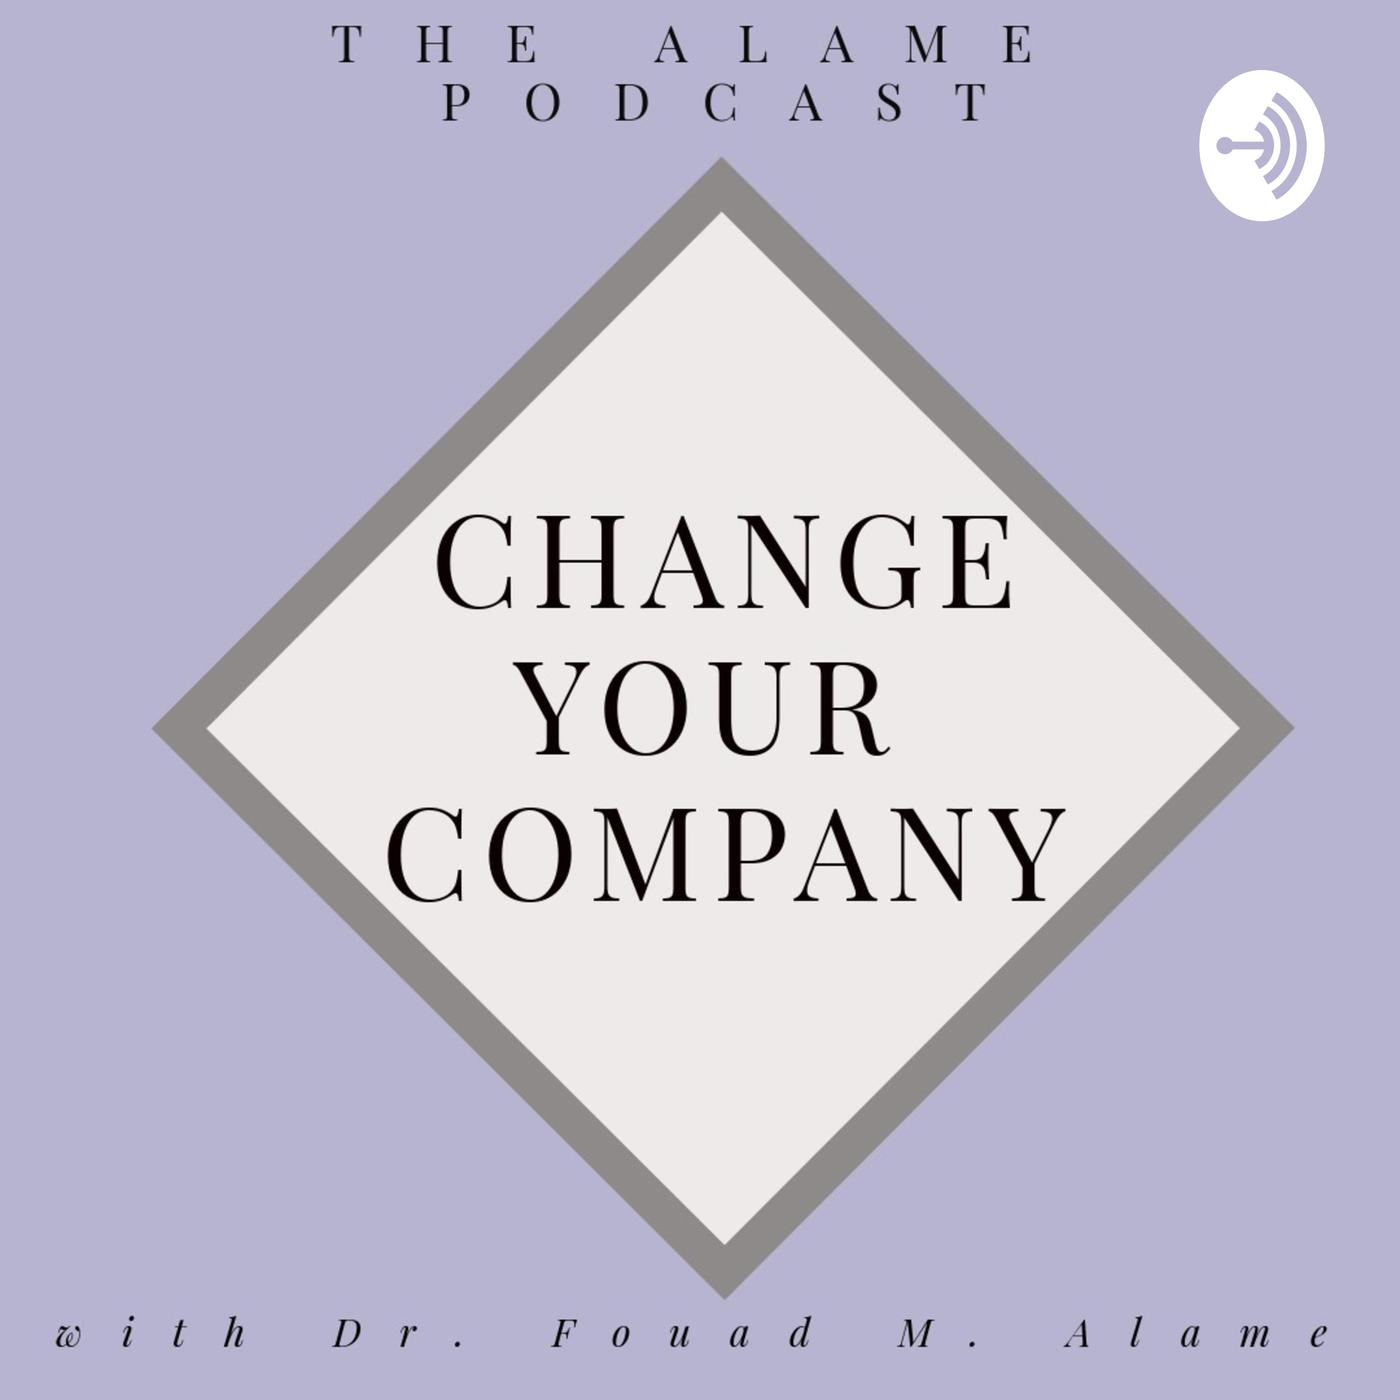 Podcast: Alame Podcast with Dr. Gardner